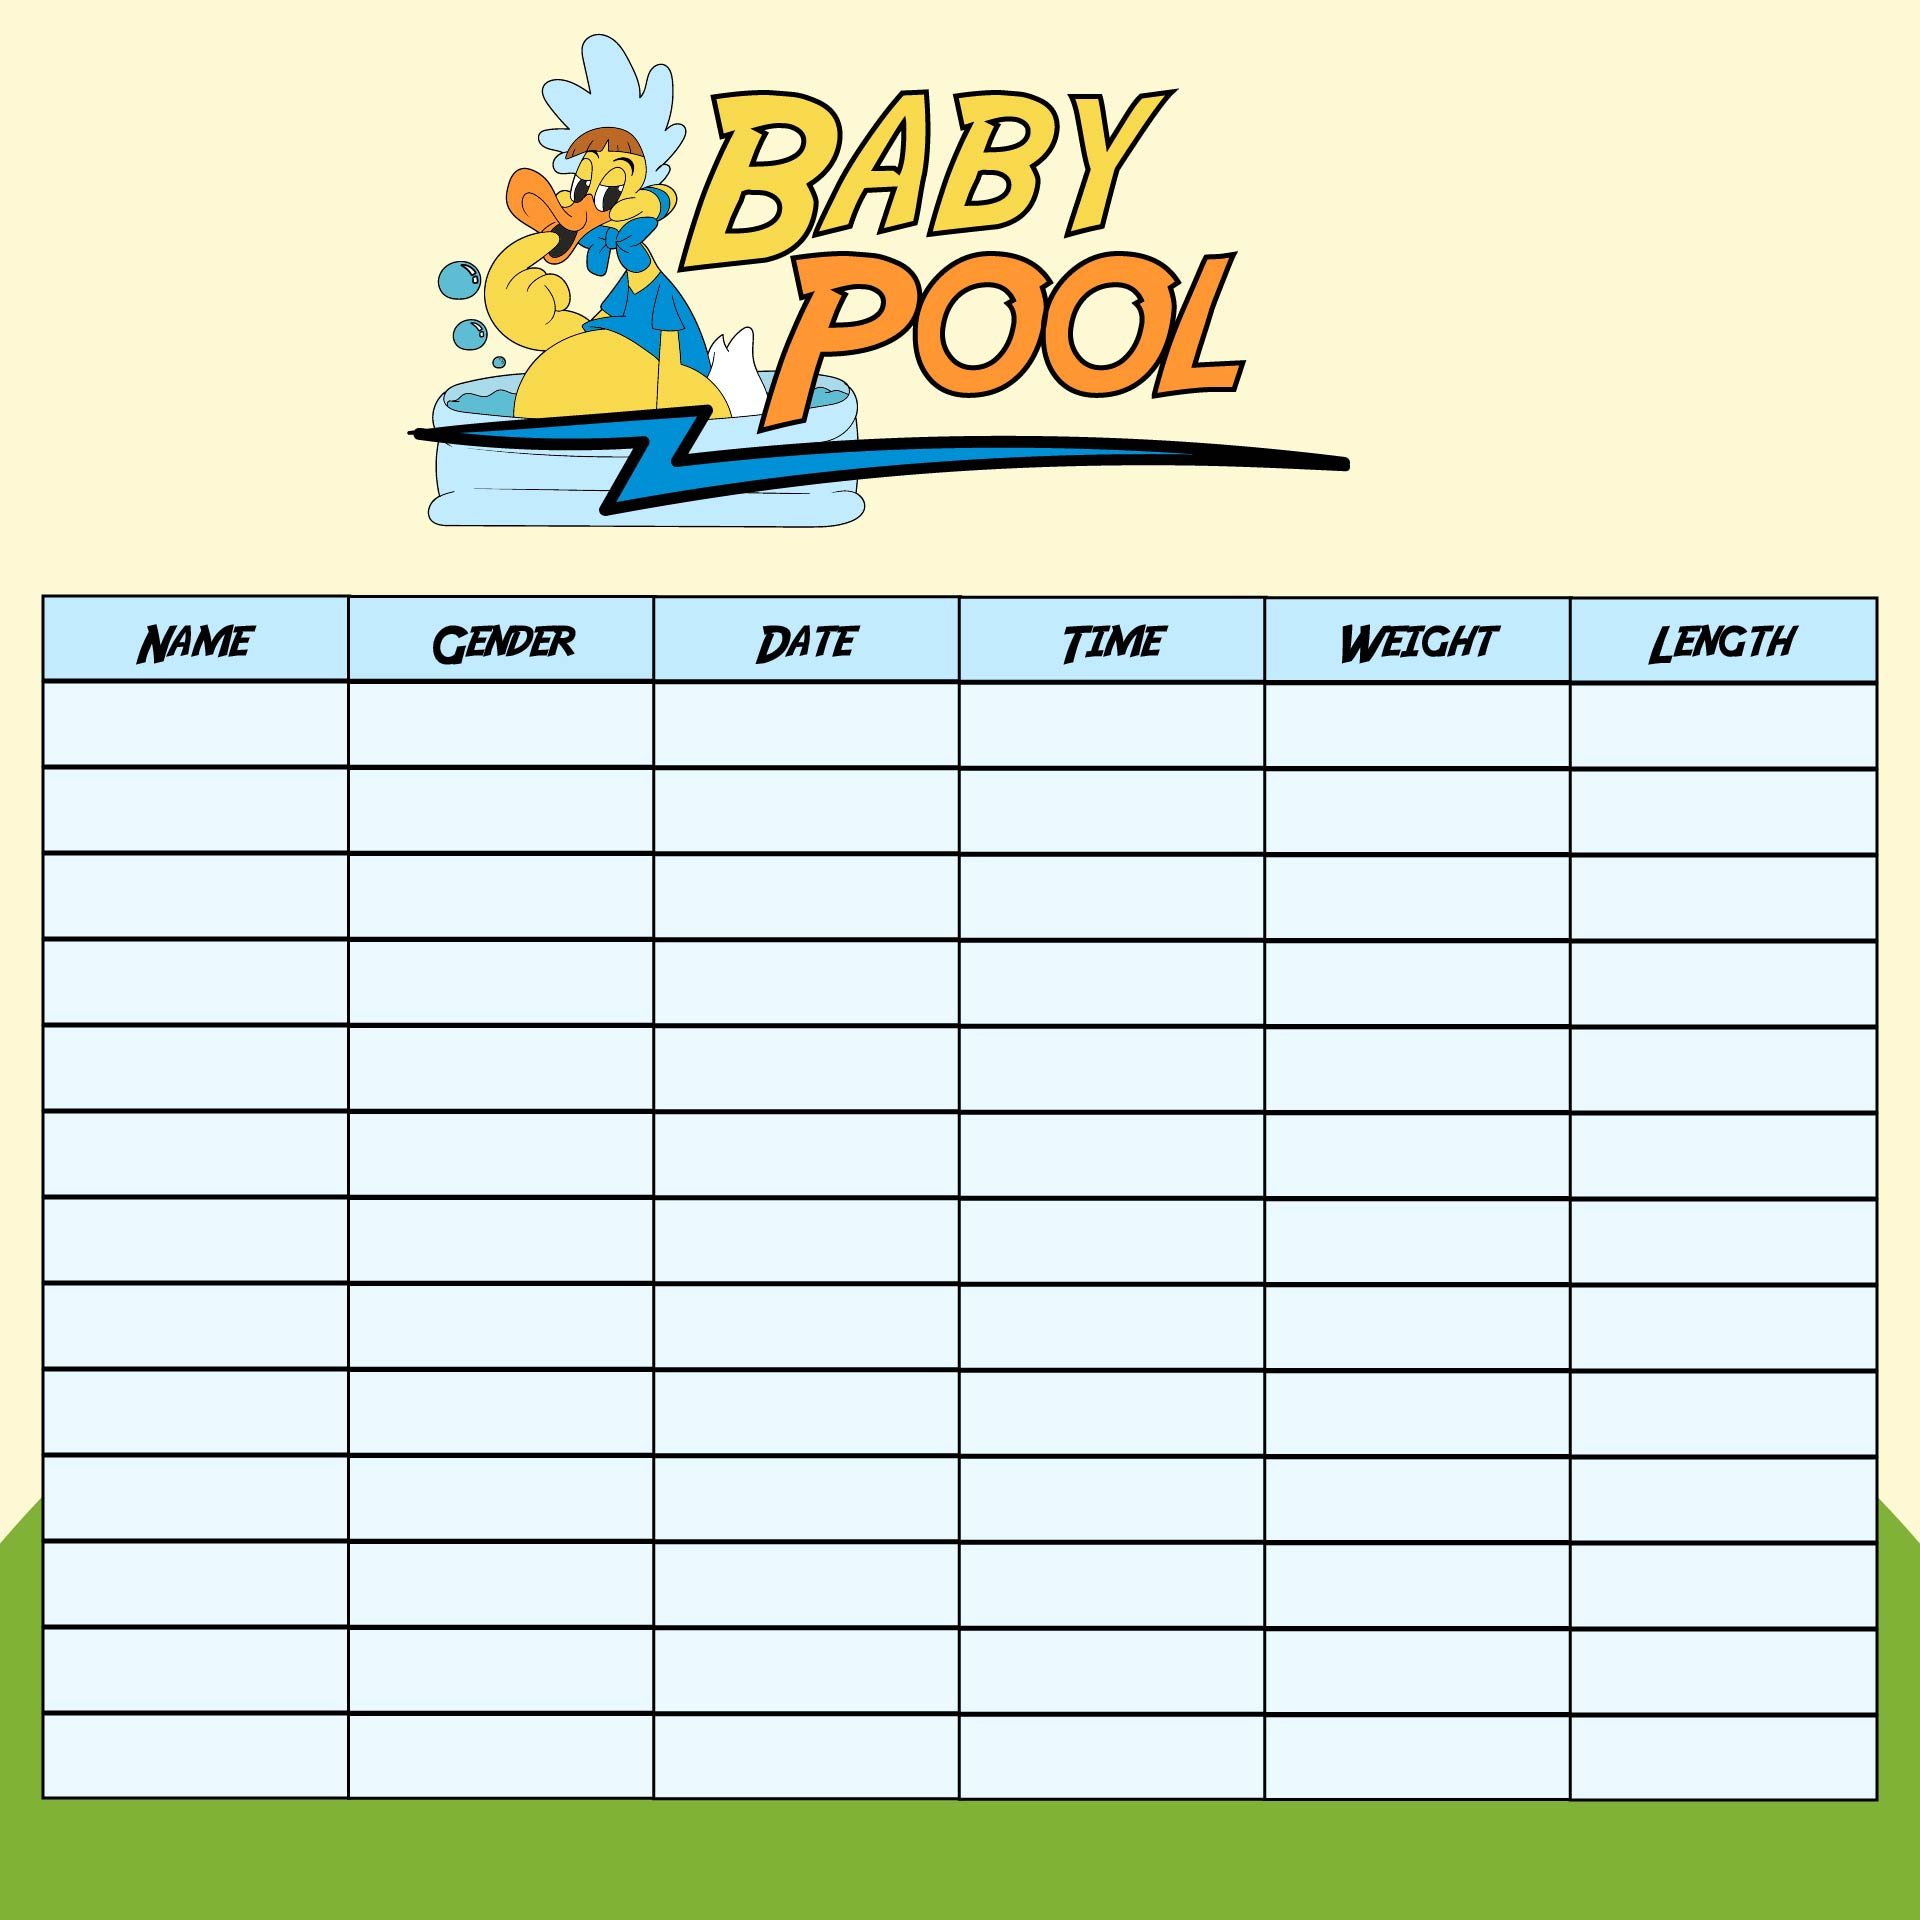 Printable Office Baby Pool Template